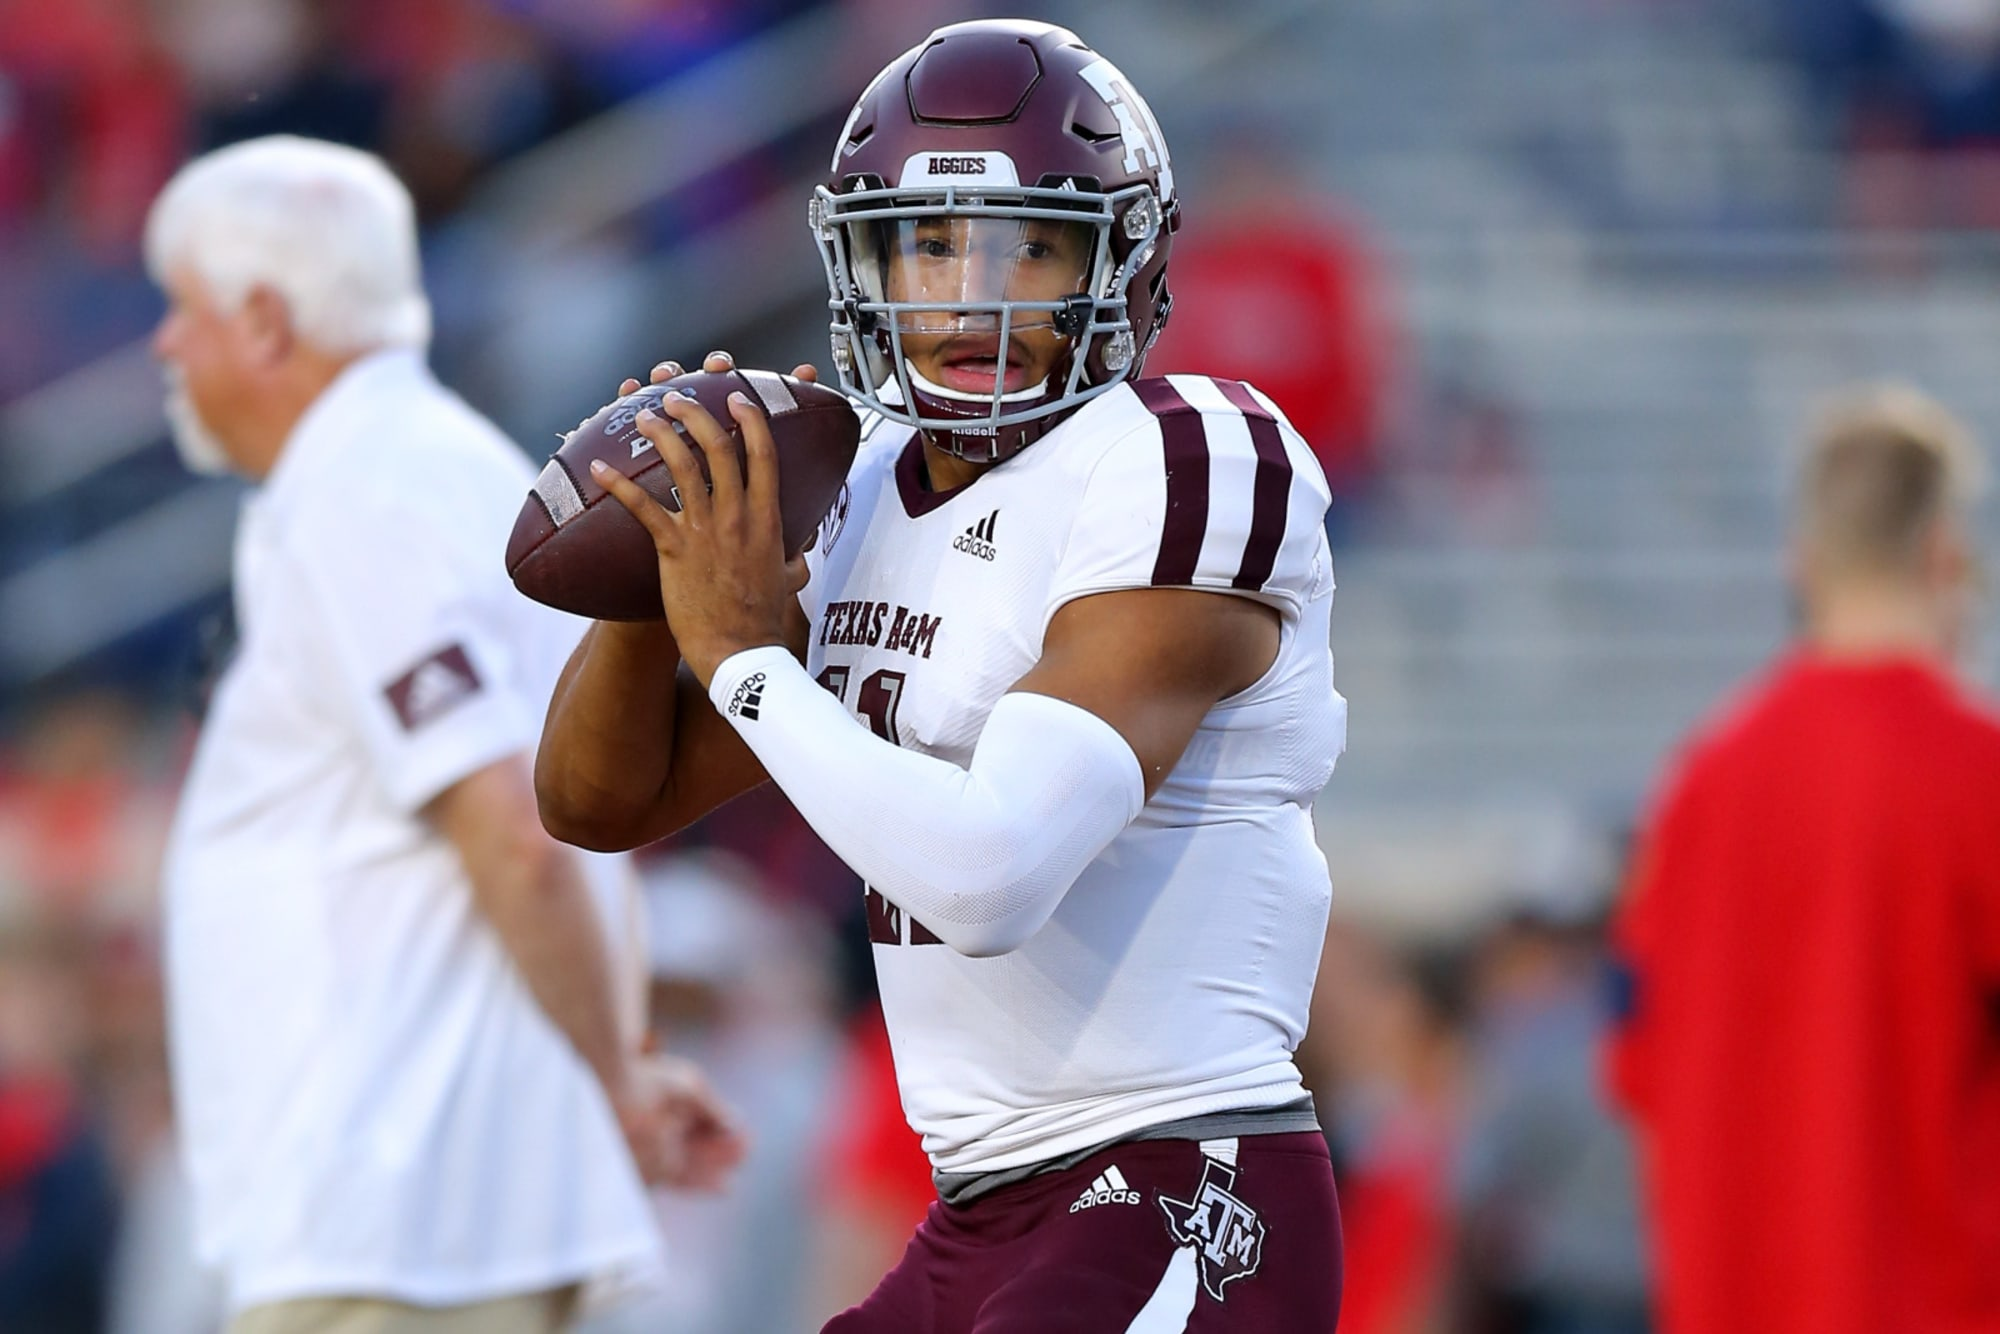 Texas A&M football drops new uniforms and they look incredible